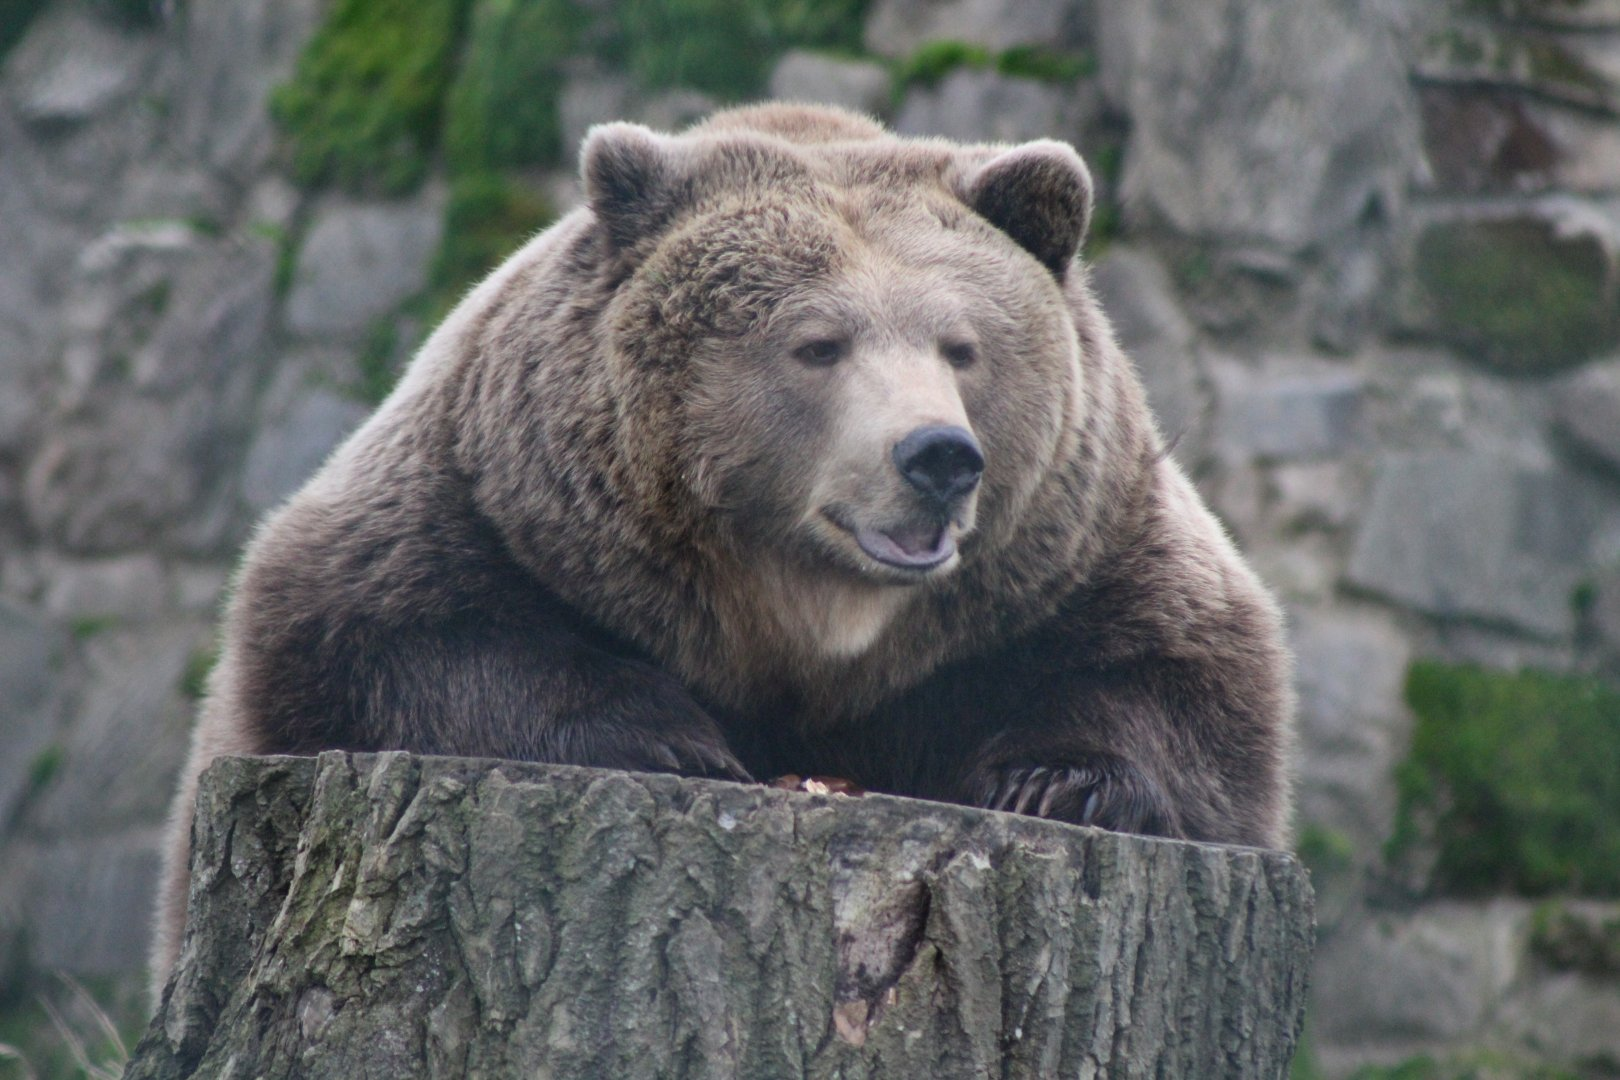 The bear, a missing predator of the Caledonian Forest